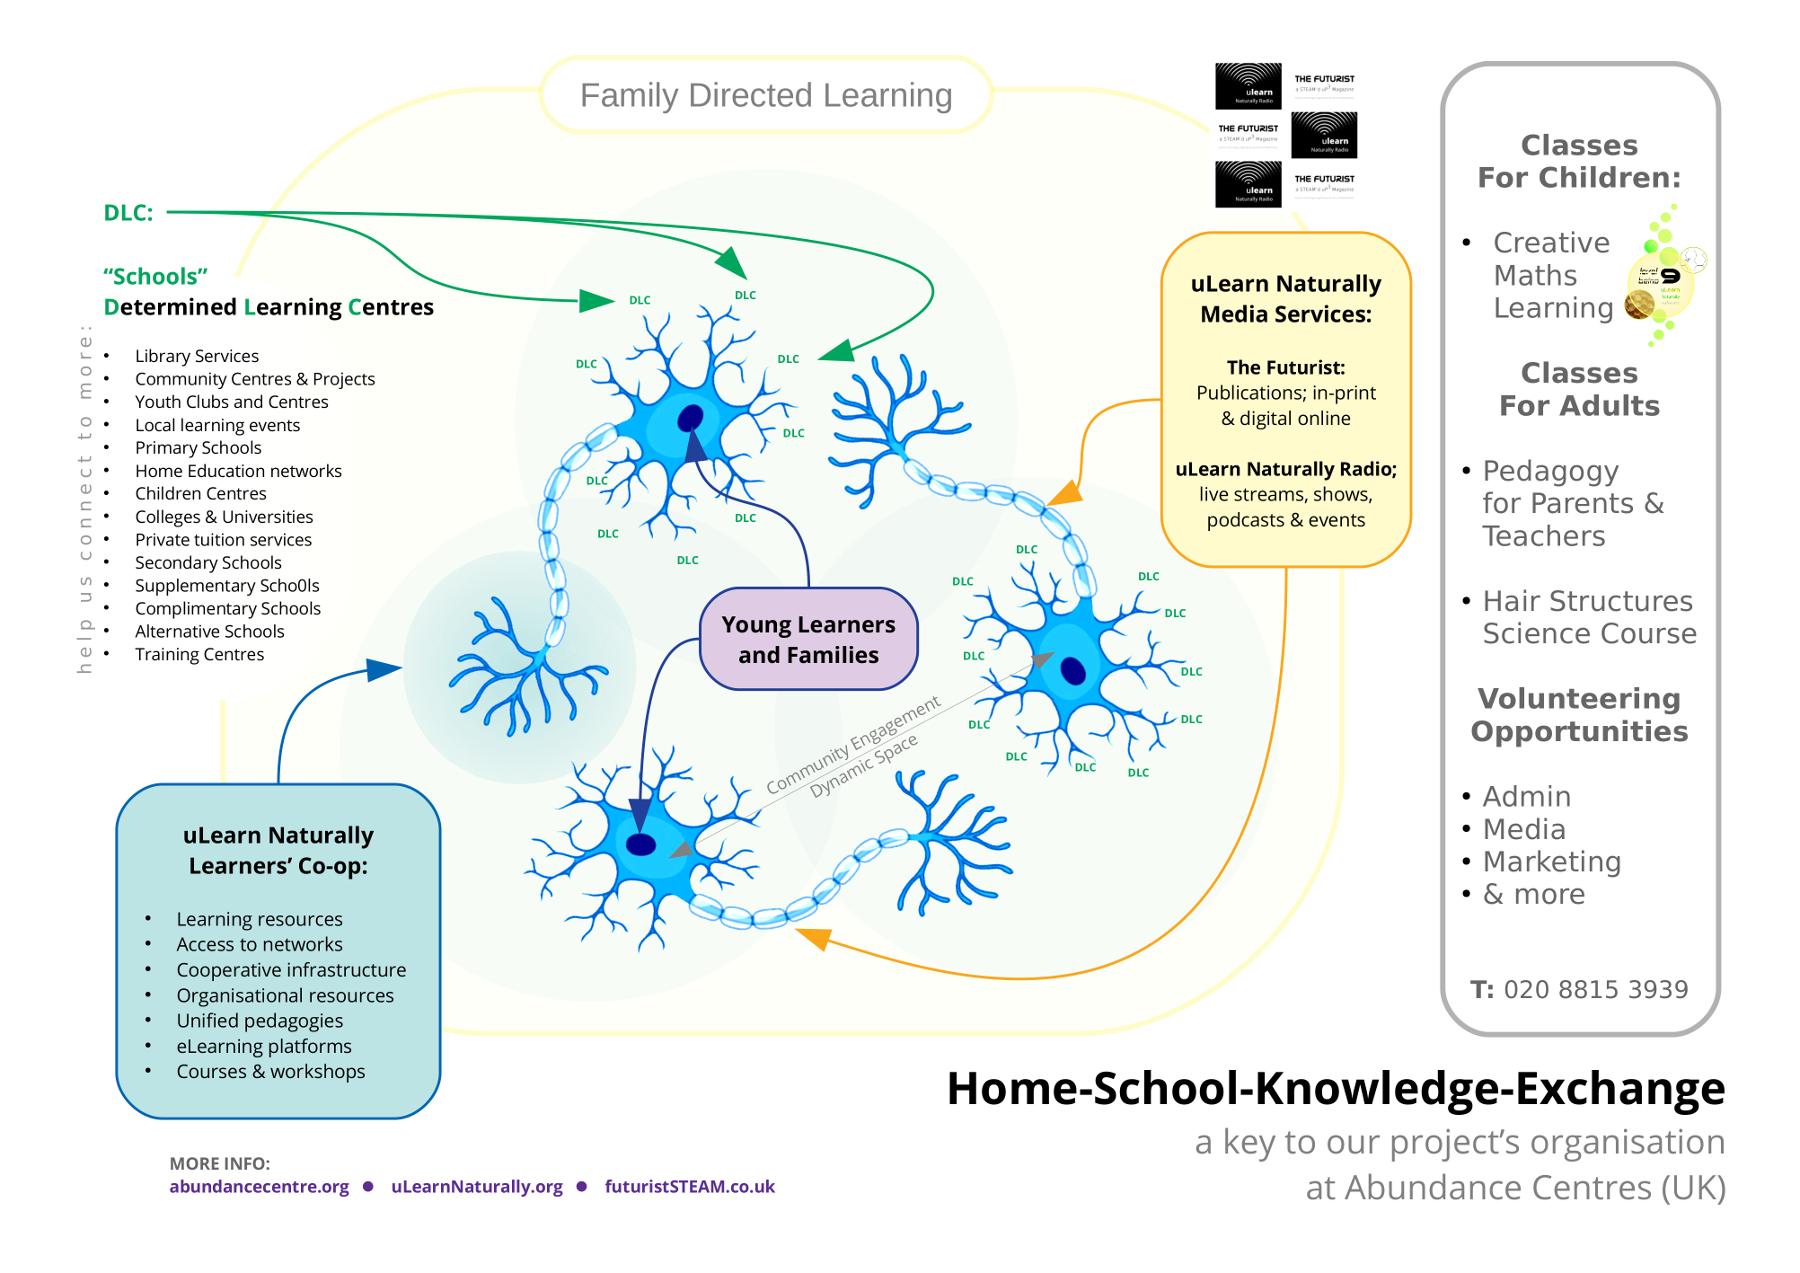 Home School Knowledge Exchange (HSKE) Icon   (the neuron key)